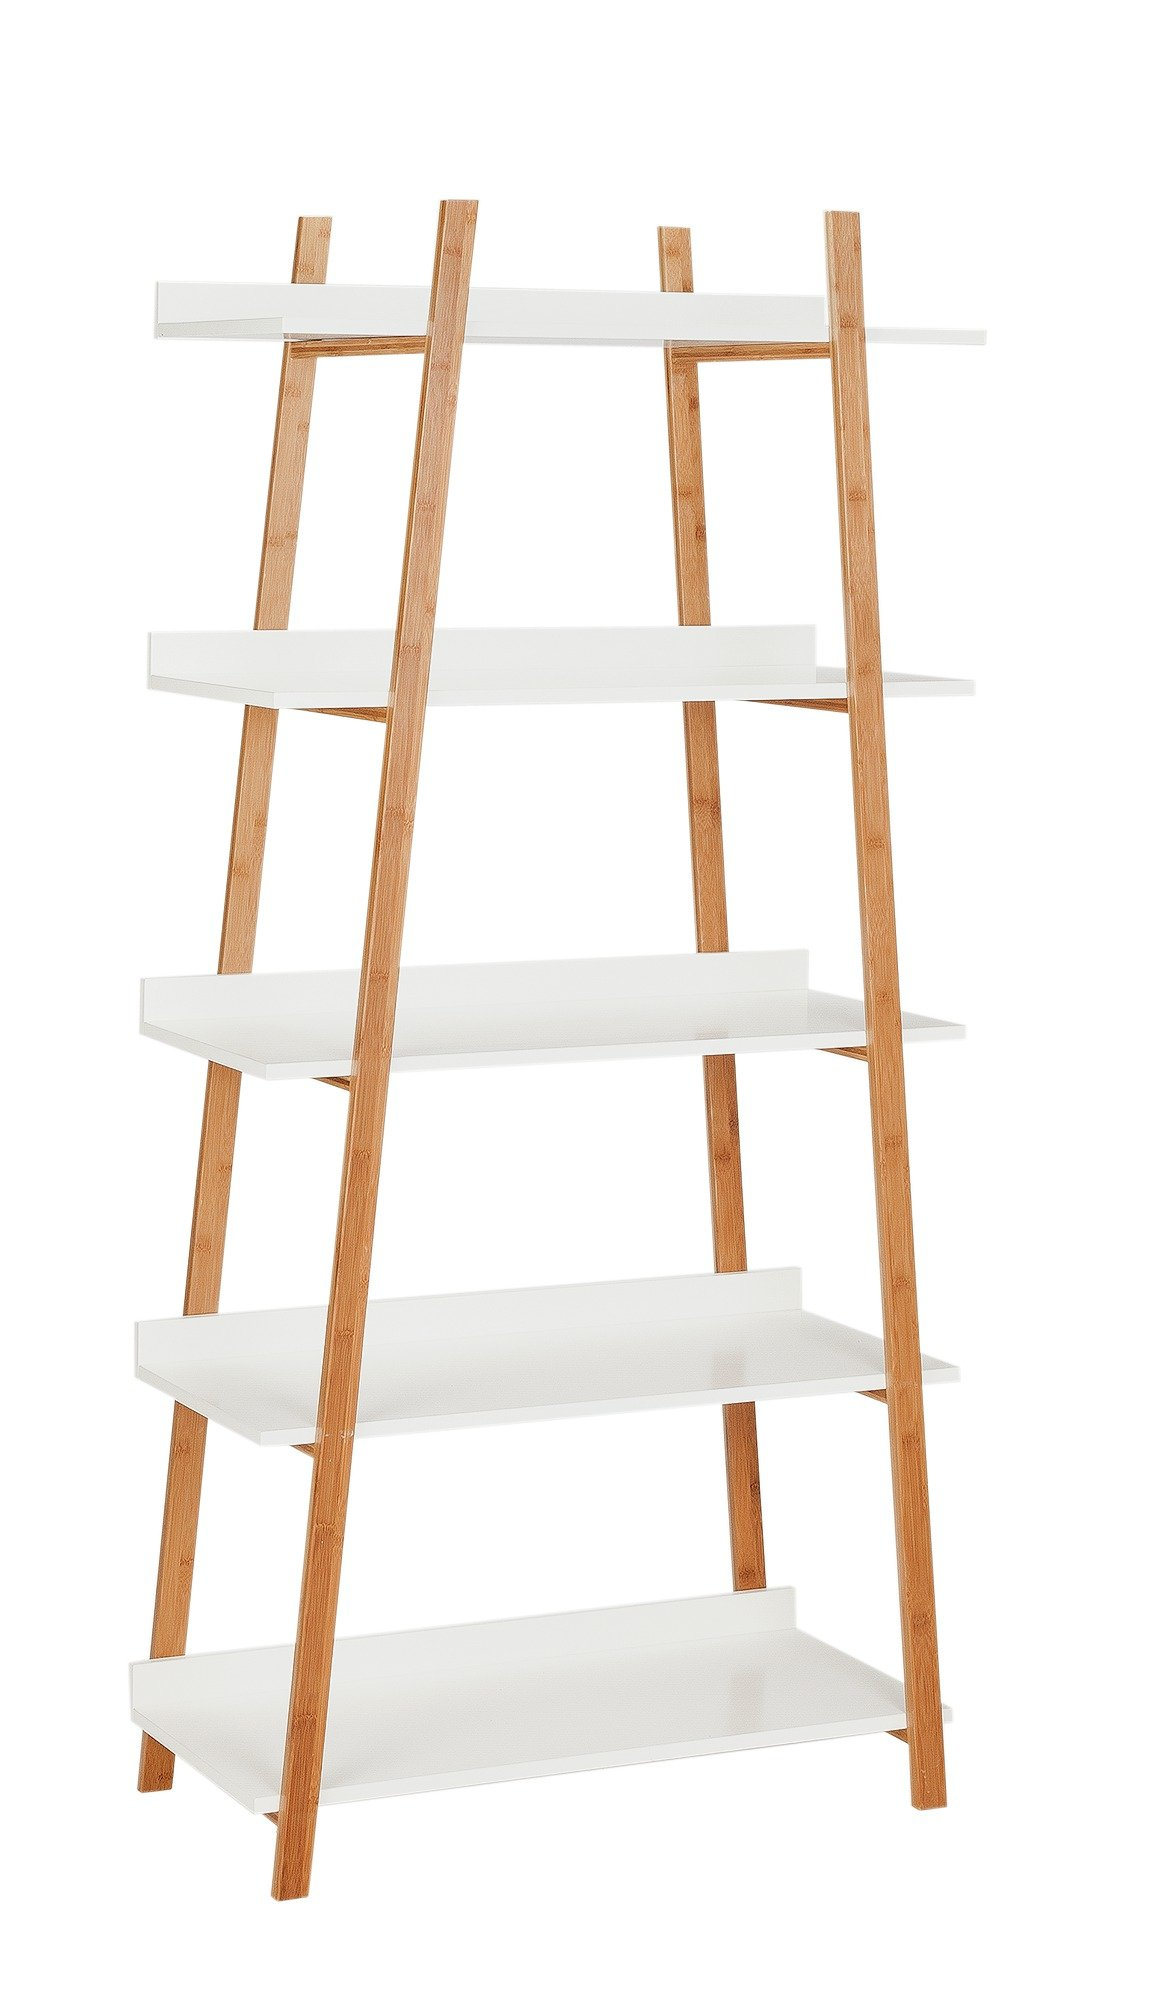 Argos Home Skanda 5 Tier Bamboo Shelving Unit - White